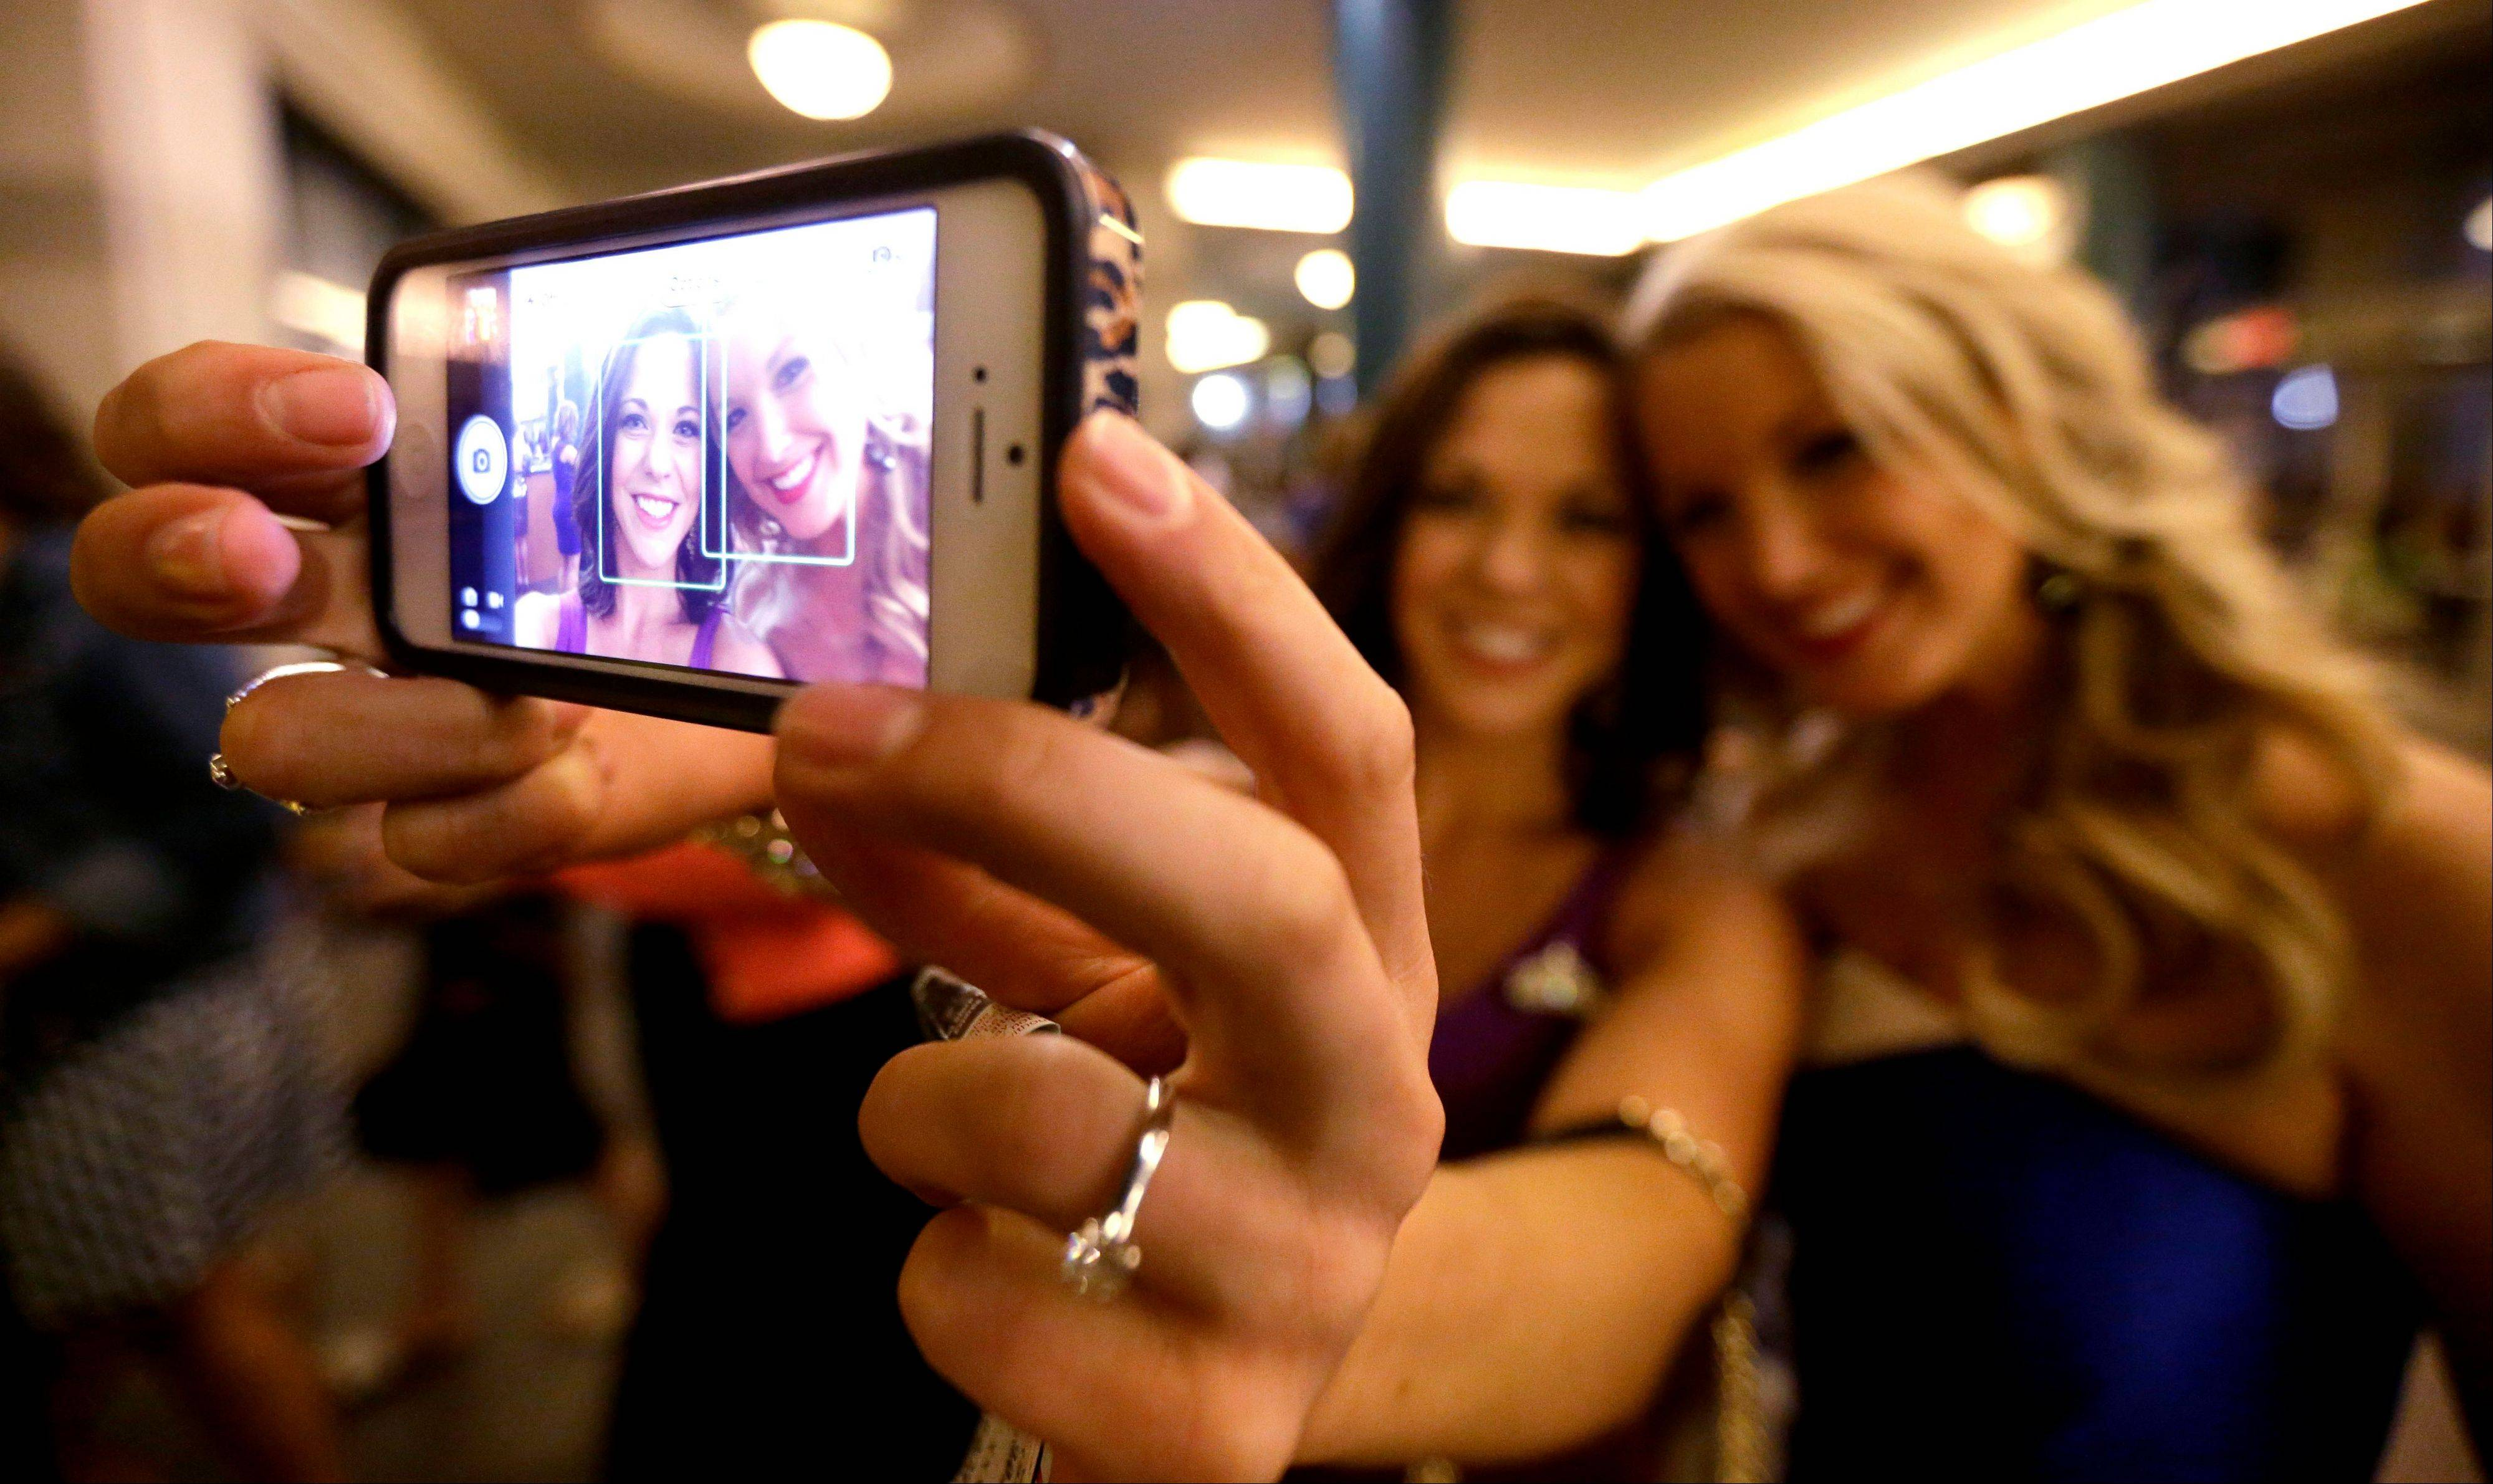 Miss America pageant alumni Miss South Dakota Calista Kirby, left, and Miss Rhode Island Kelsey Fournier take a photograph of themselves with a phone before the Miss America 2014 pageant, Sunday, Sept. 15, 2013, in Atlantic City, N.J. The former misses participated in last year's contest in Las Vegas.